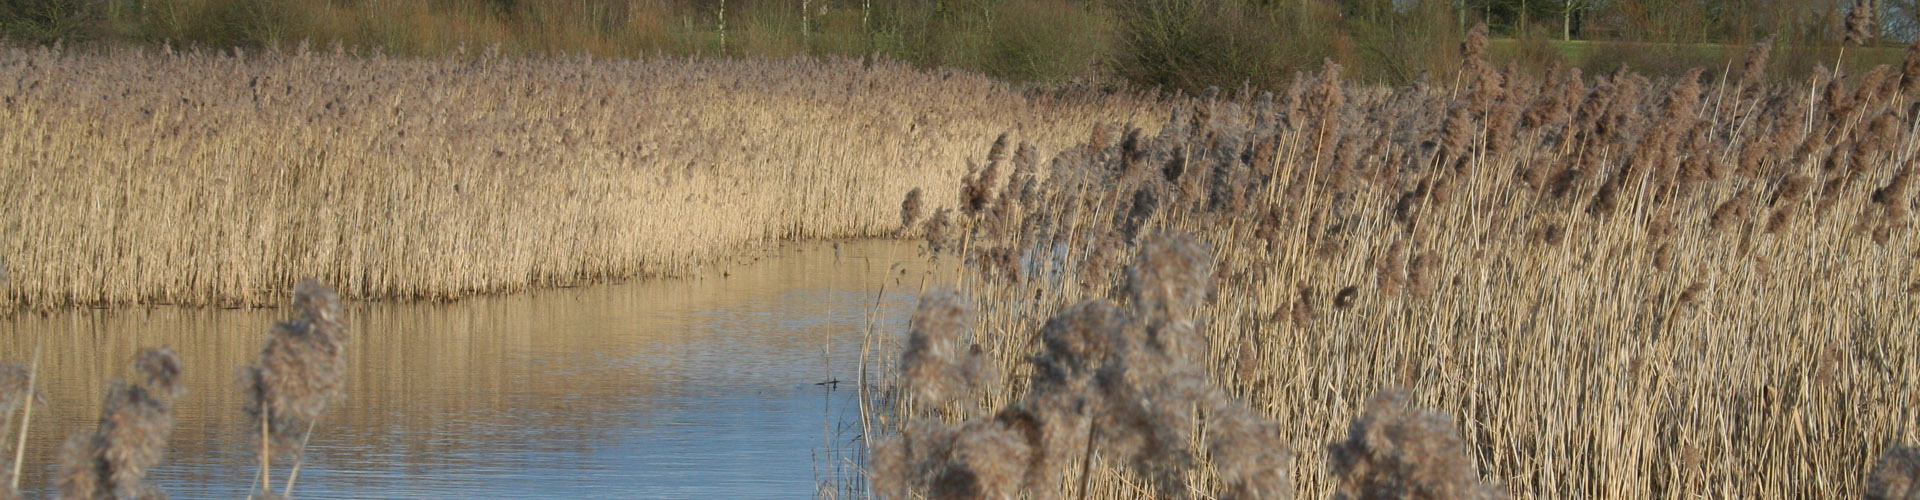 Phragmites australis at Brandon Marsh wetland in Warwickshire